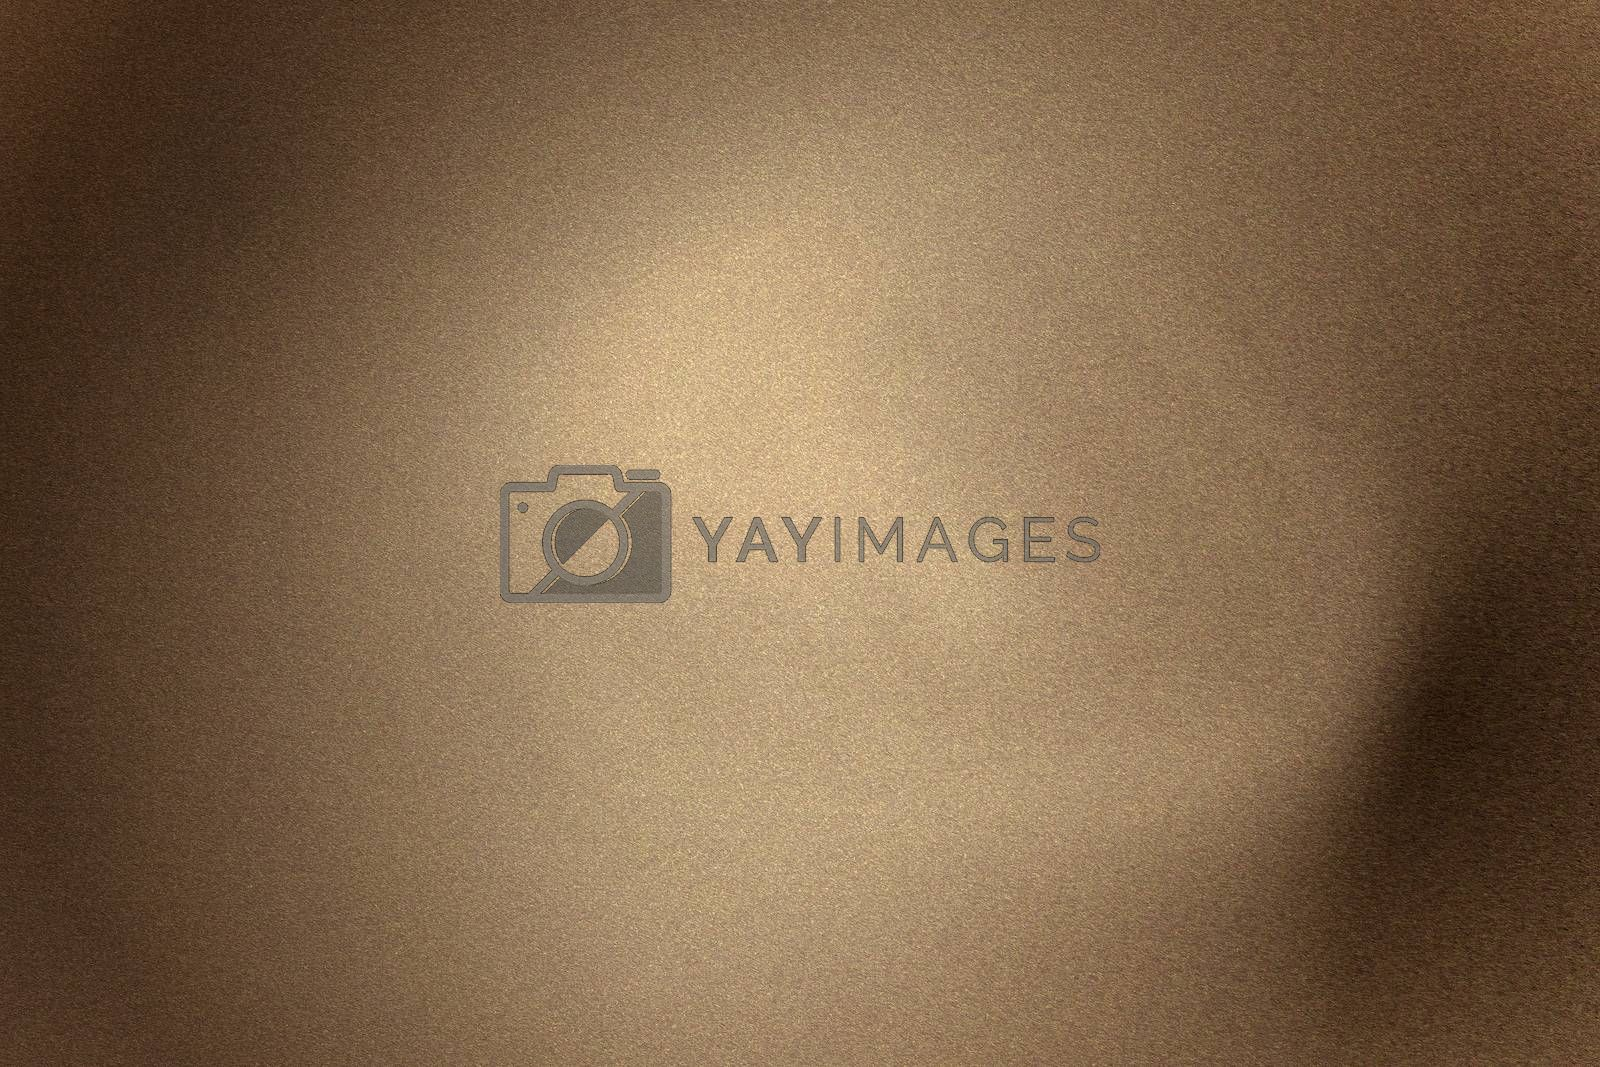 Royalty free image of Light shining on brown wave metallic panel in dark room, abstract texture background by mouu007